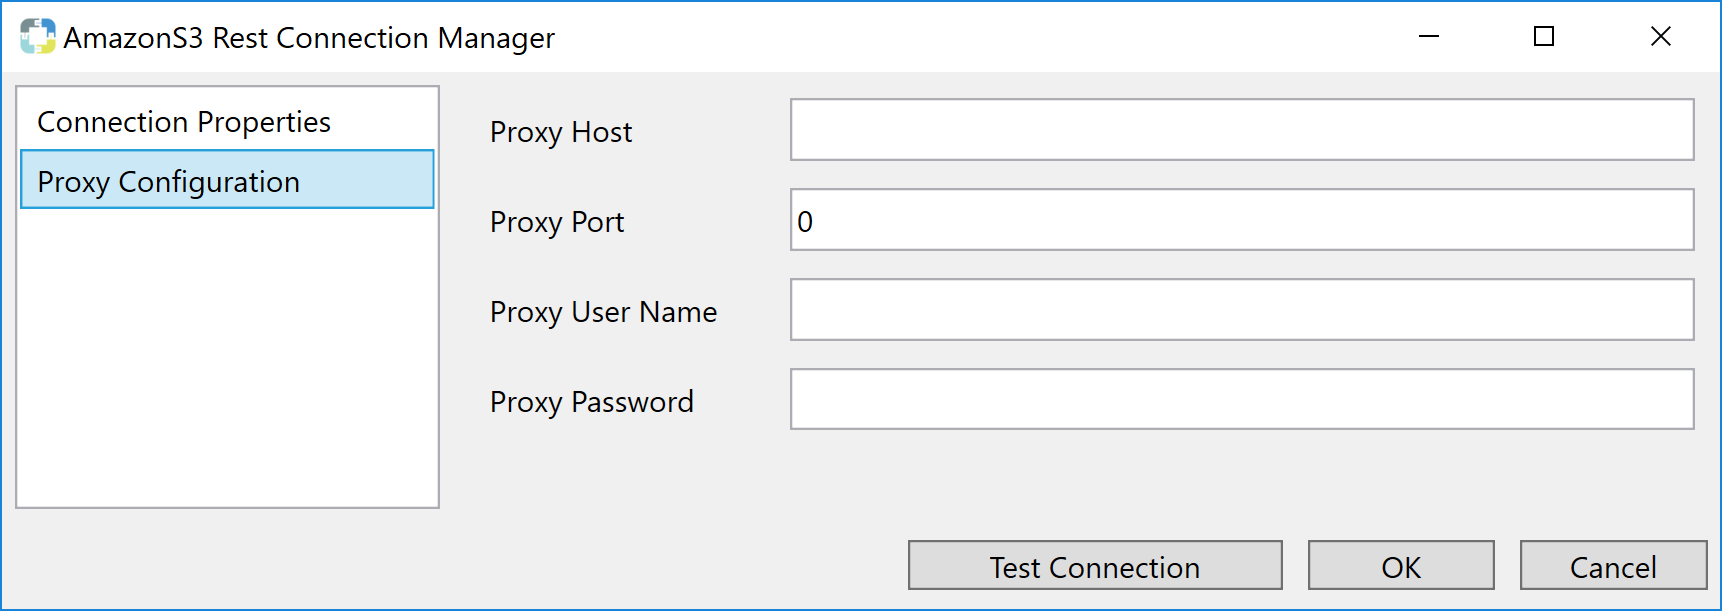 Task Factory Amazon S3 Rest Connection Manager Proxy